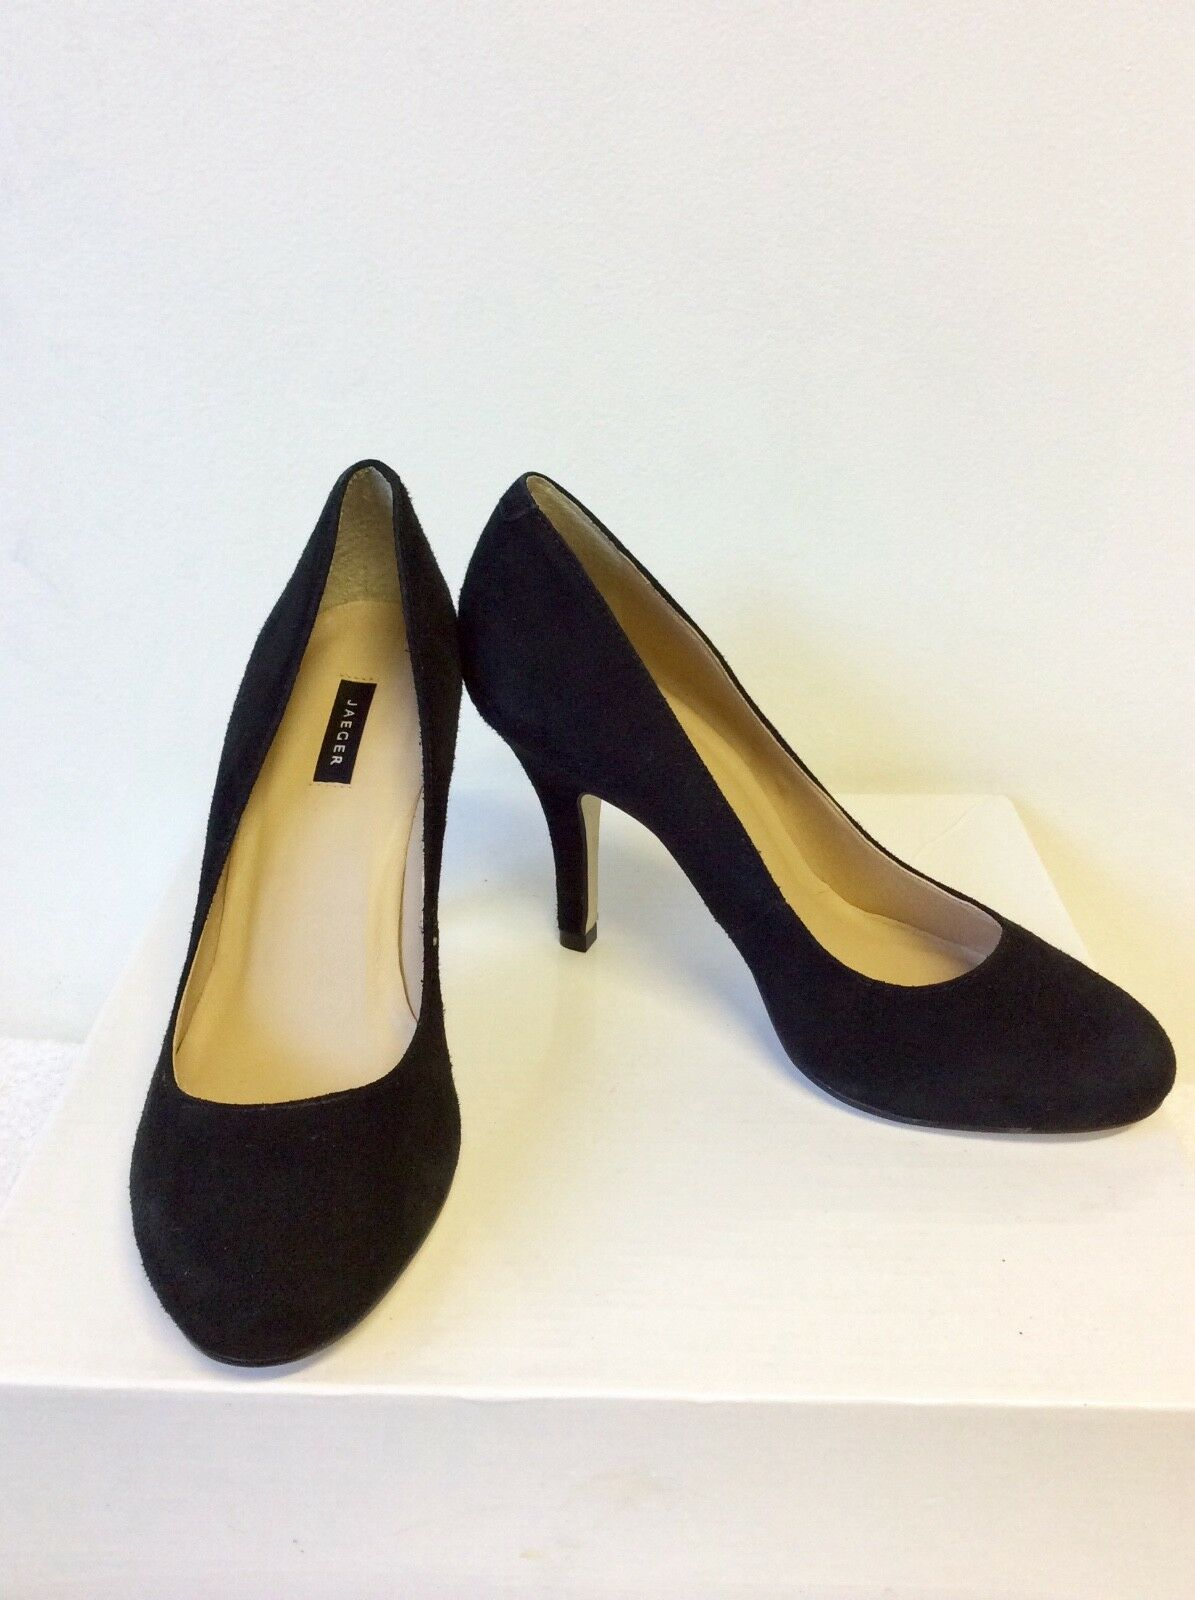 BRAND NEW SIZE JAEGER BLACK SUEDE HEELS SIZE NEW 3.5/36 80d05d